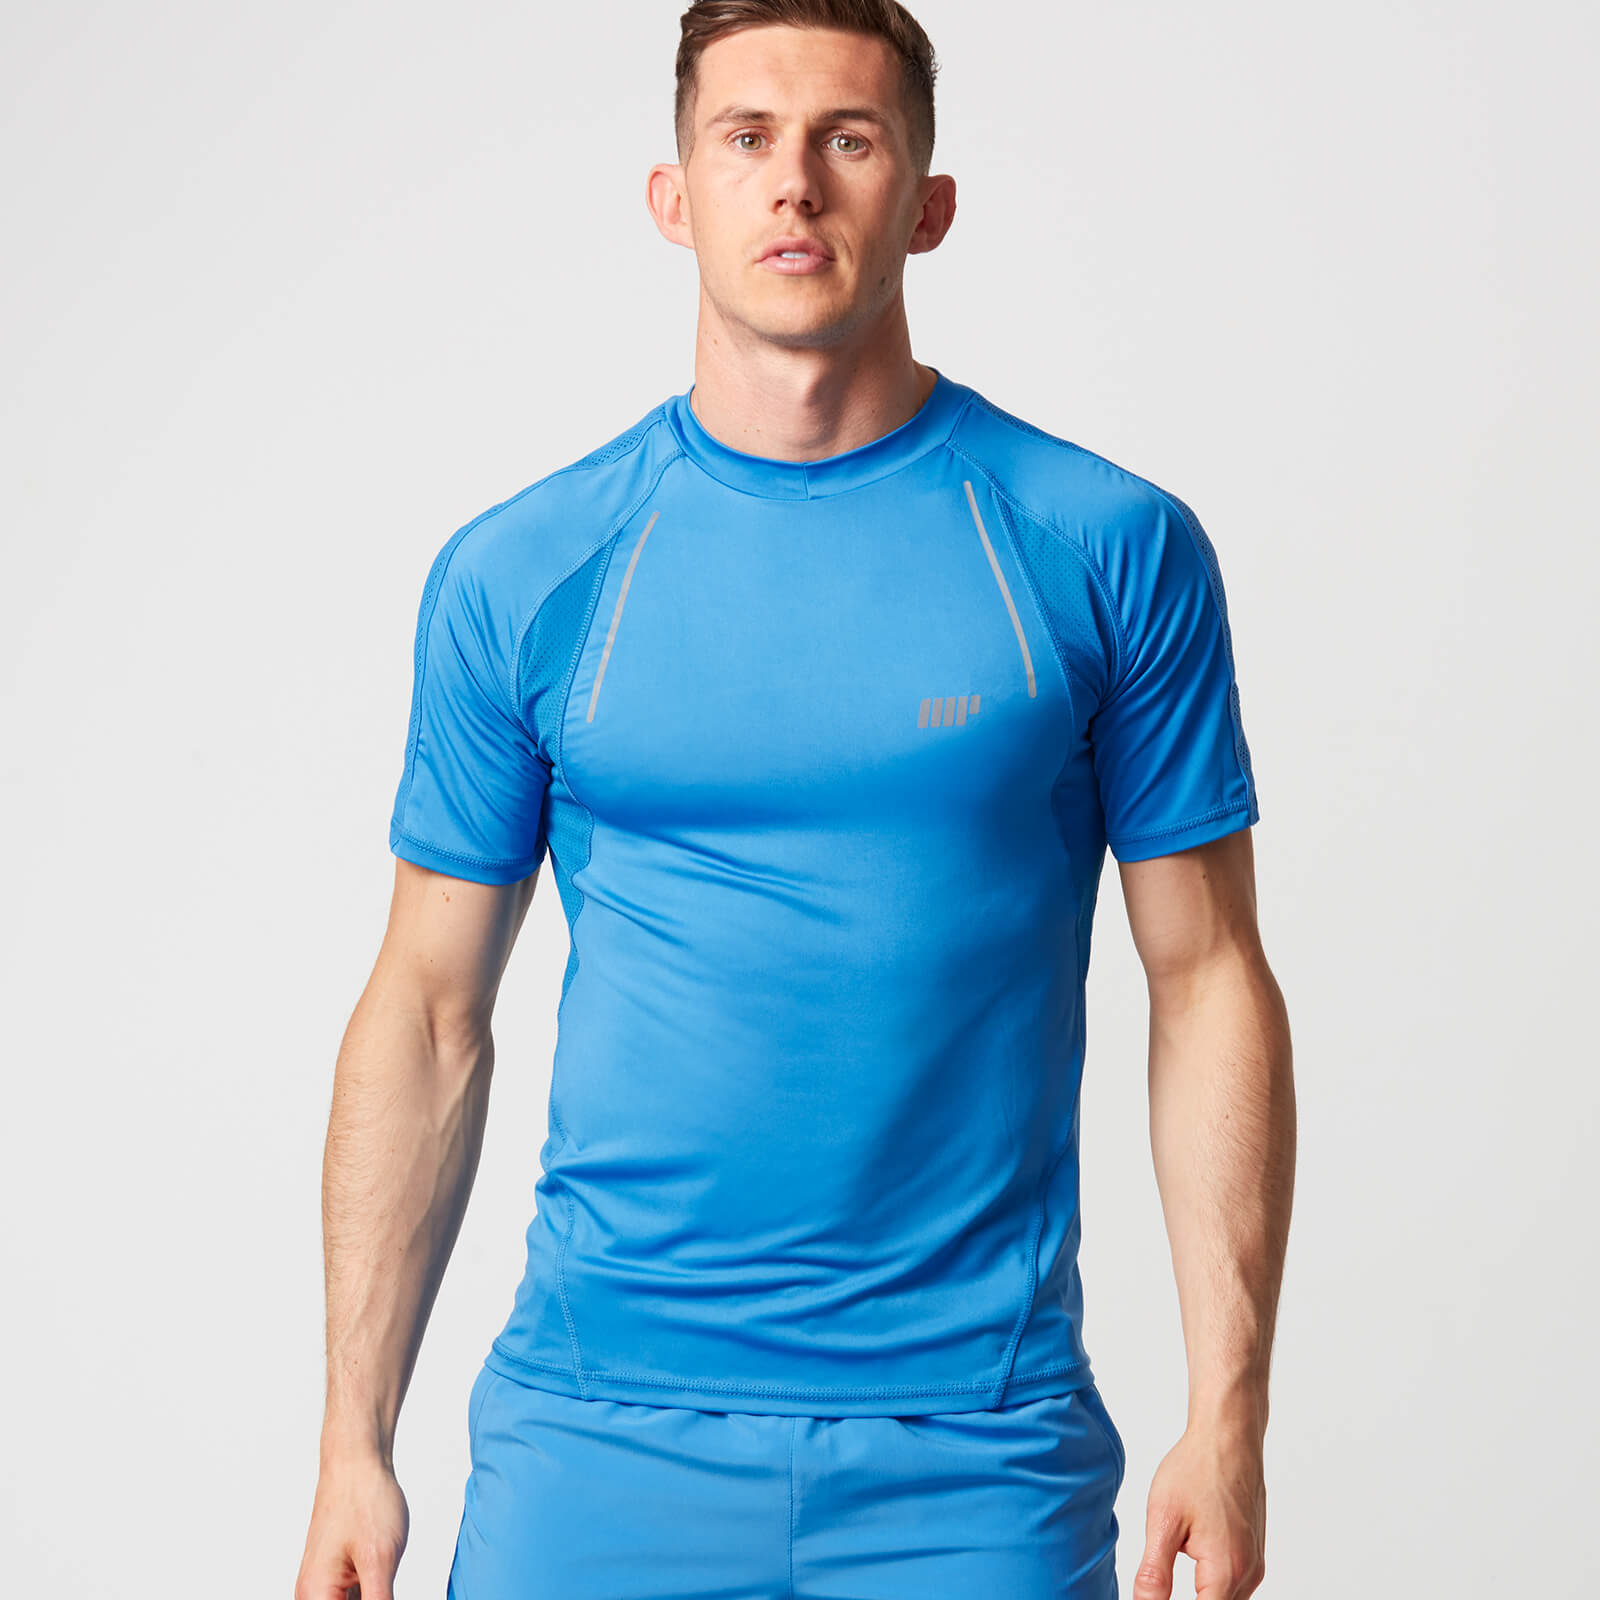 Myprotein Strike Football T-Shirt - Light Blue - XXL